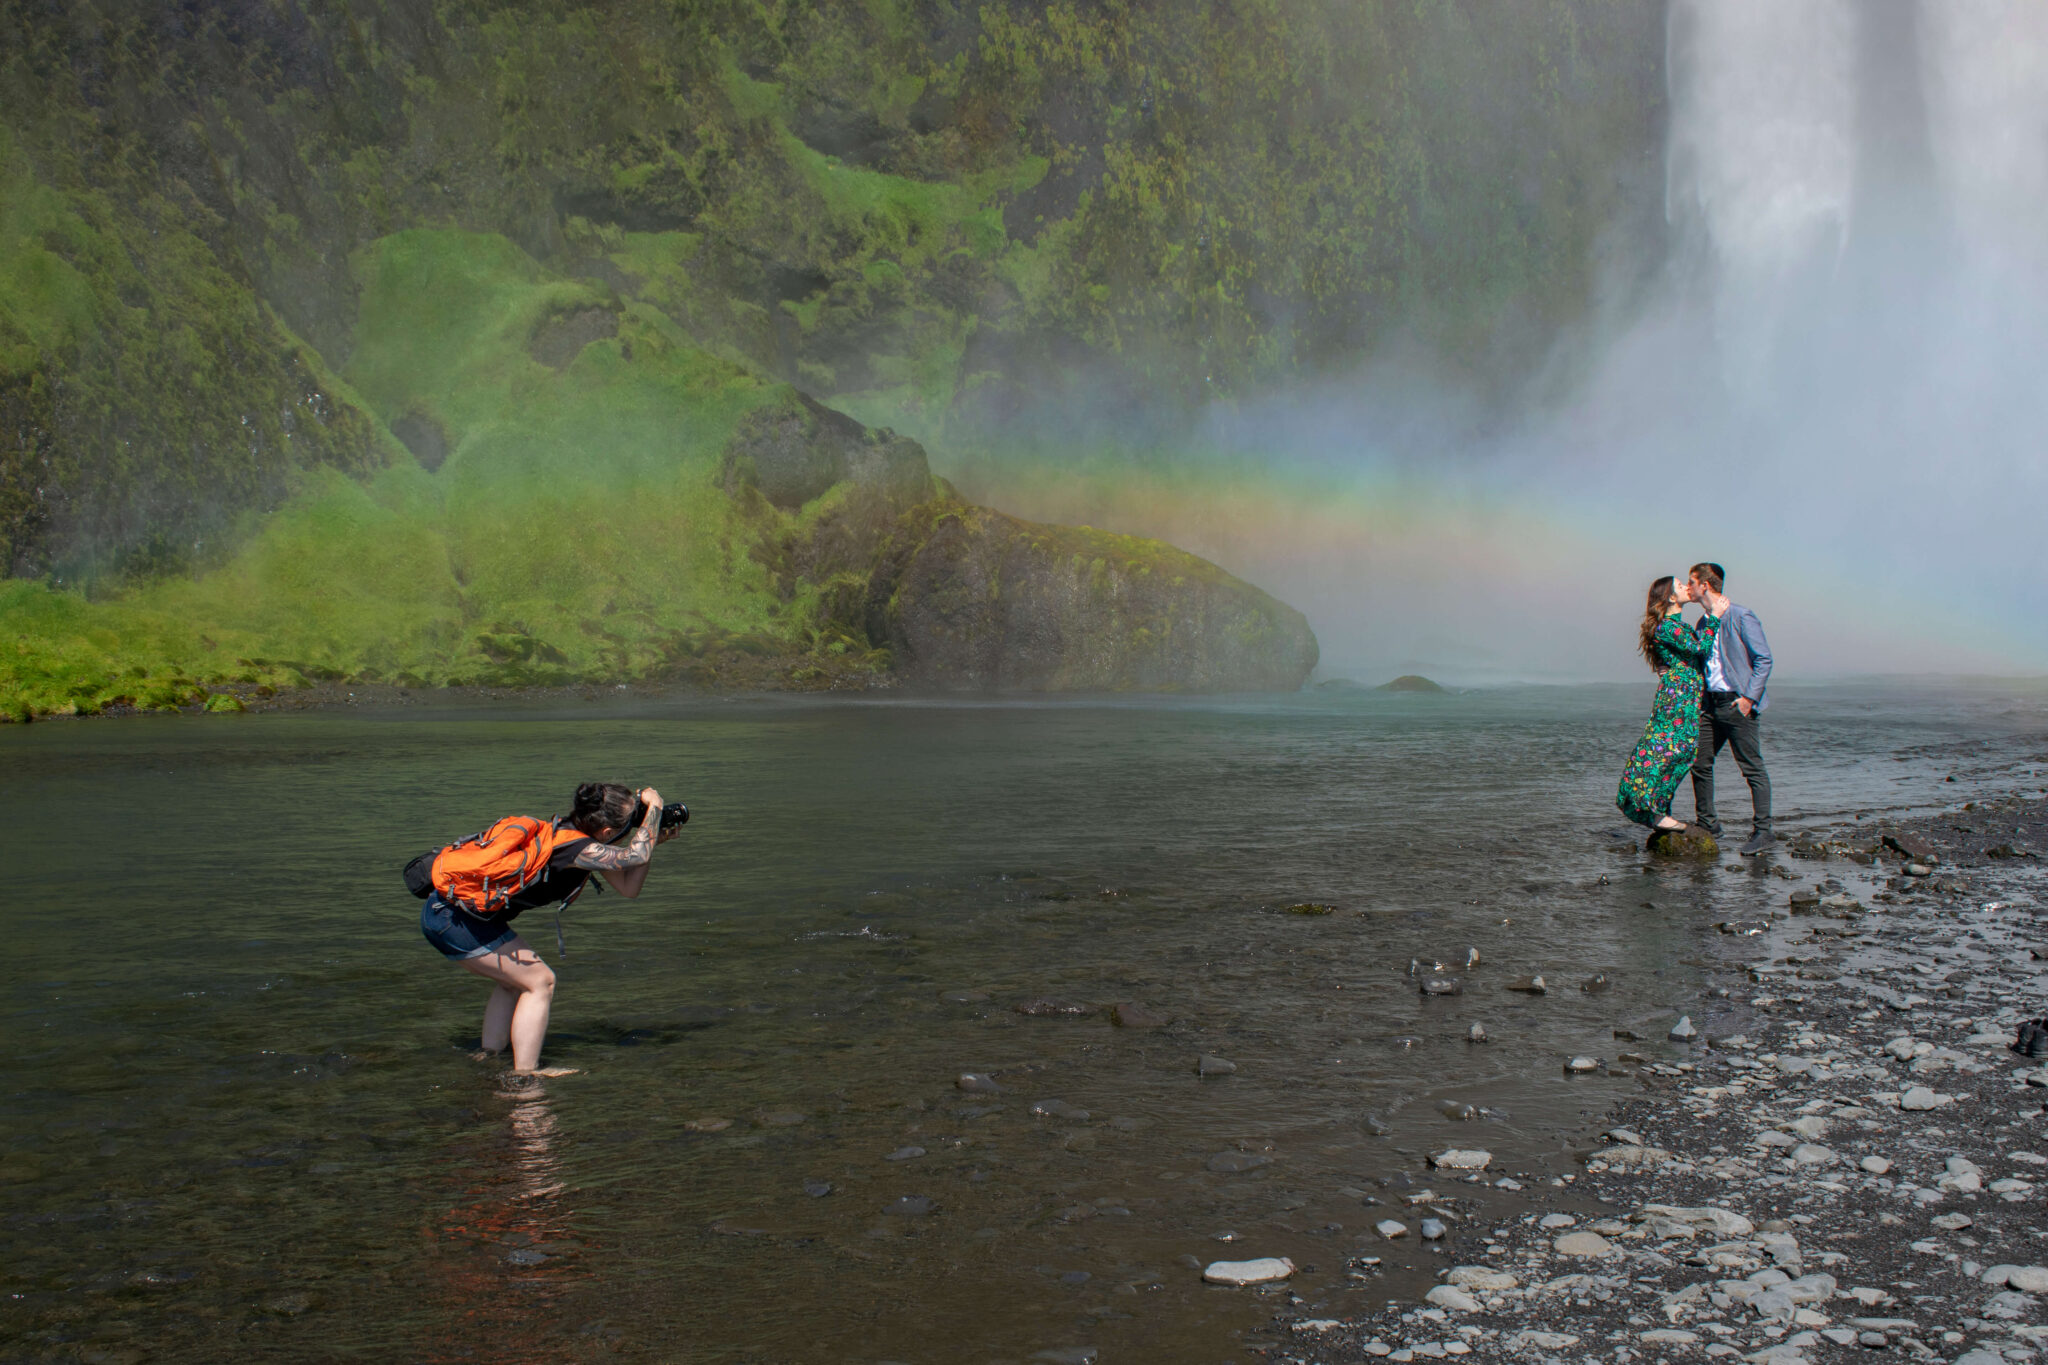 Local wedding photographer in Ieland Kat Deptula is making photo of the couple in front of the waterfall